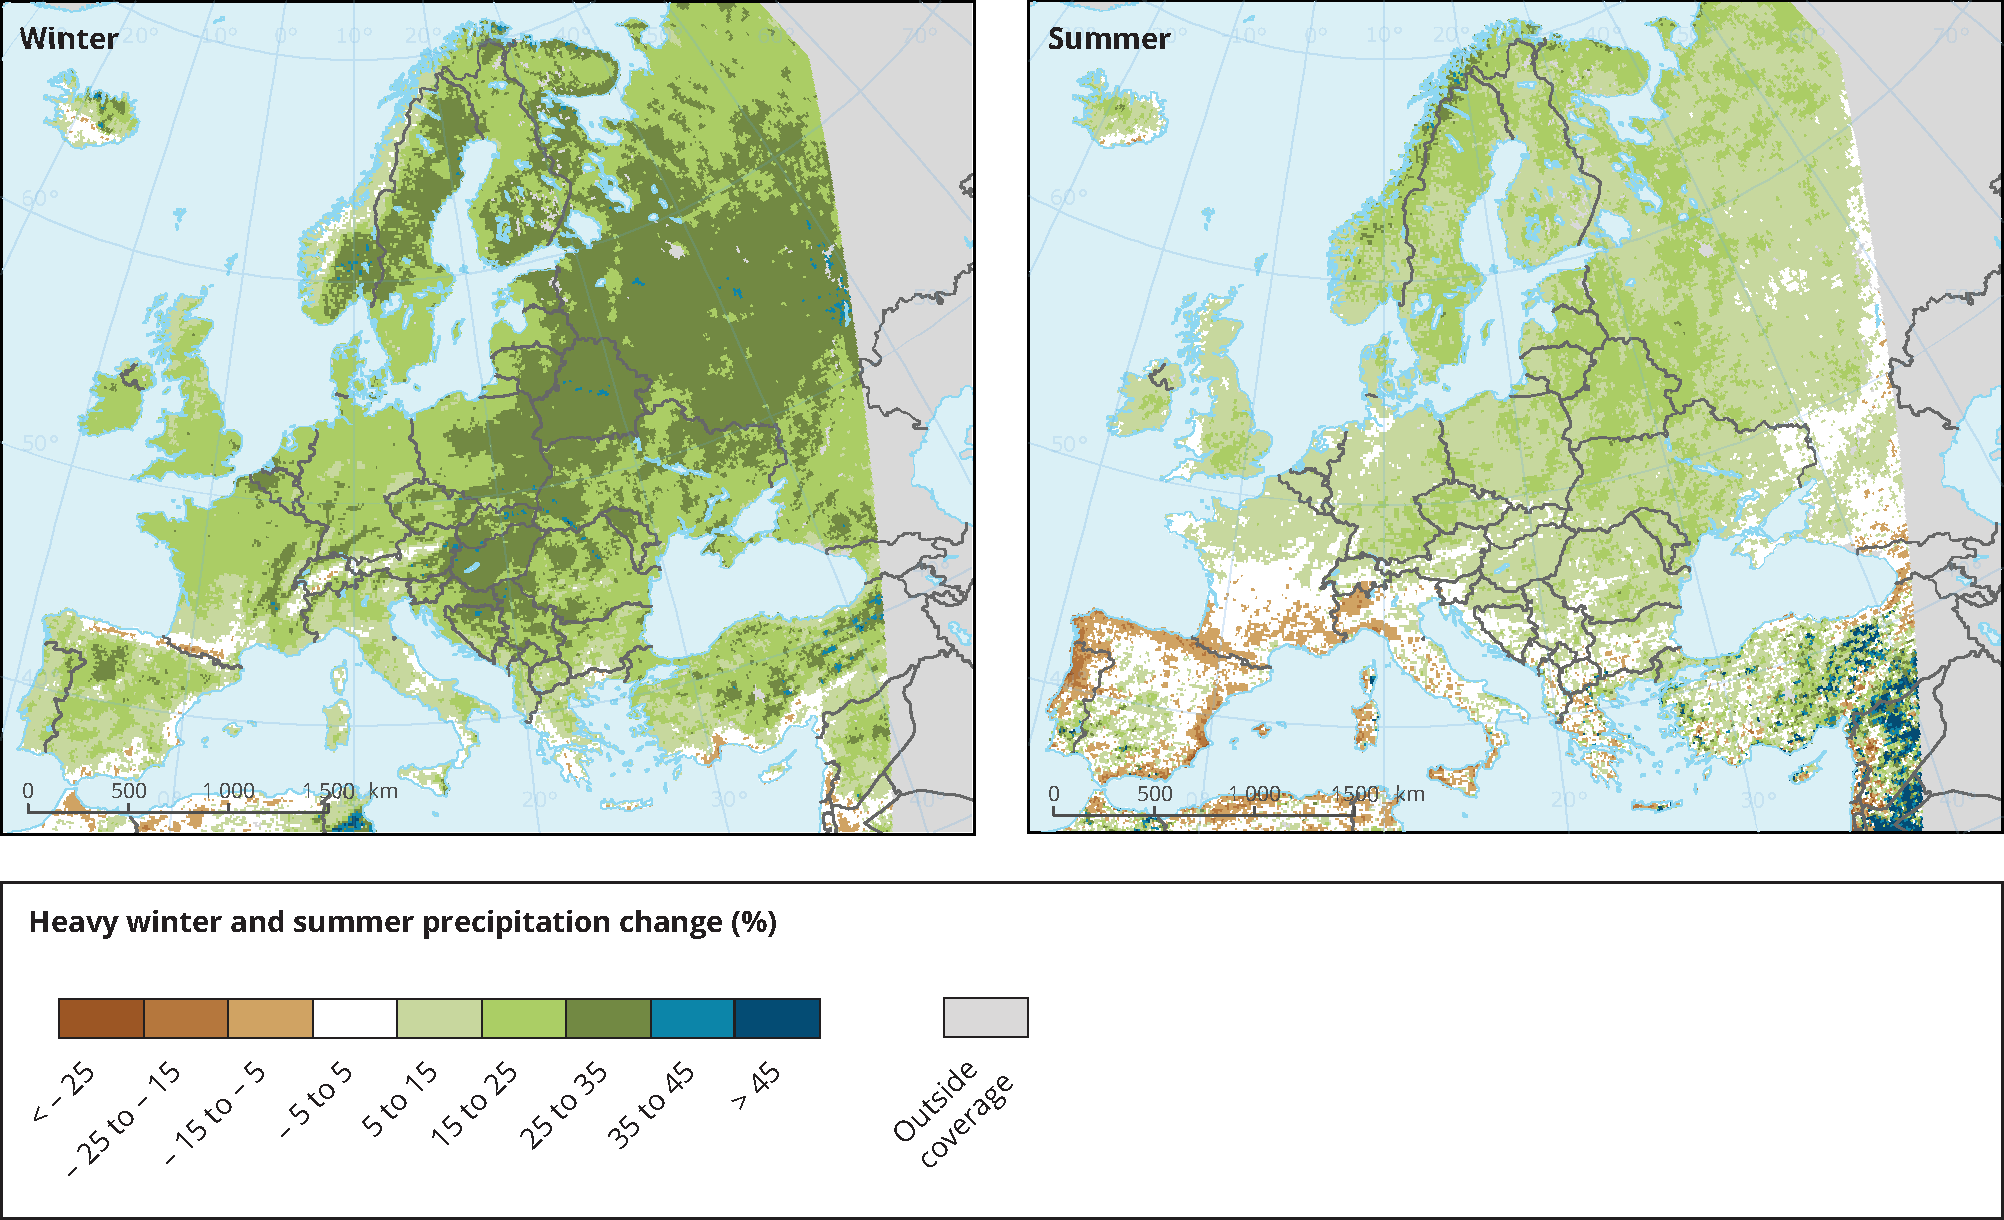 Projected changes in heavy precipitation in winter and summer